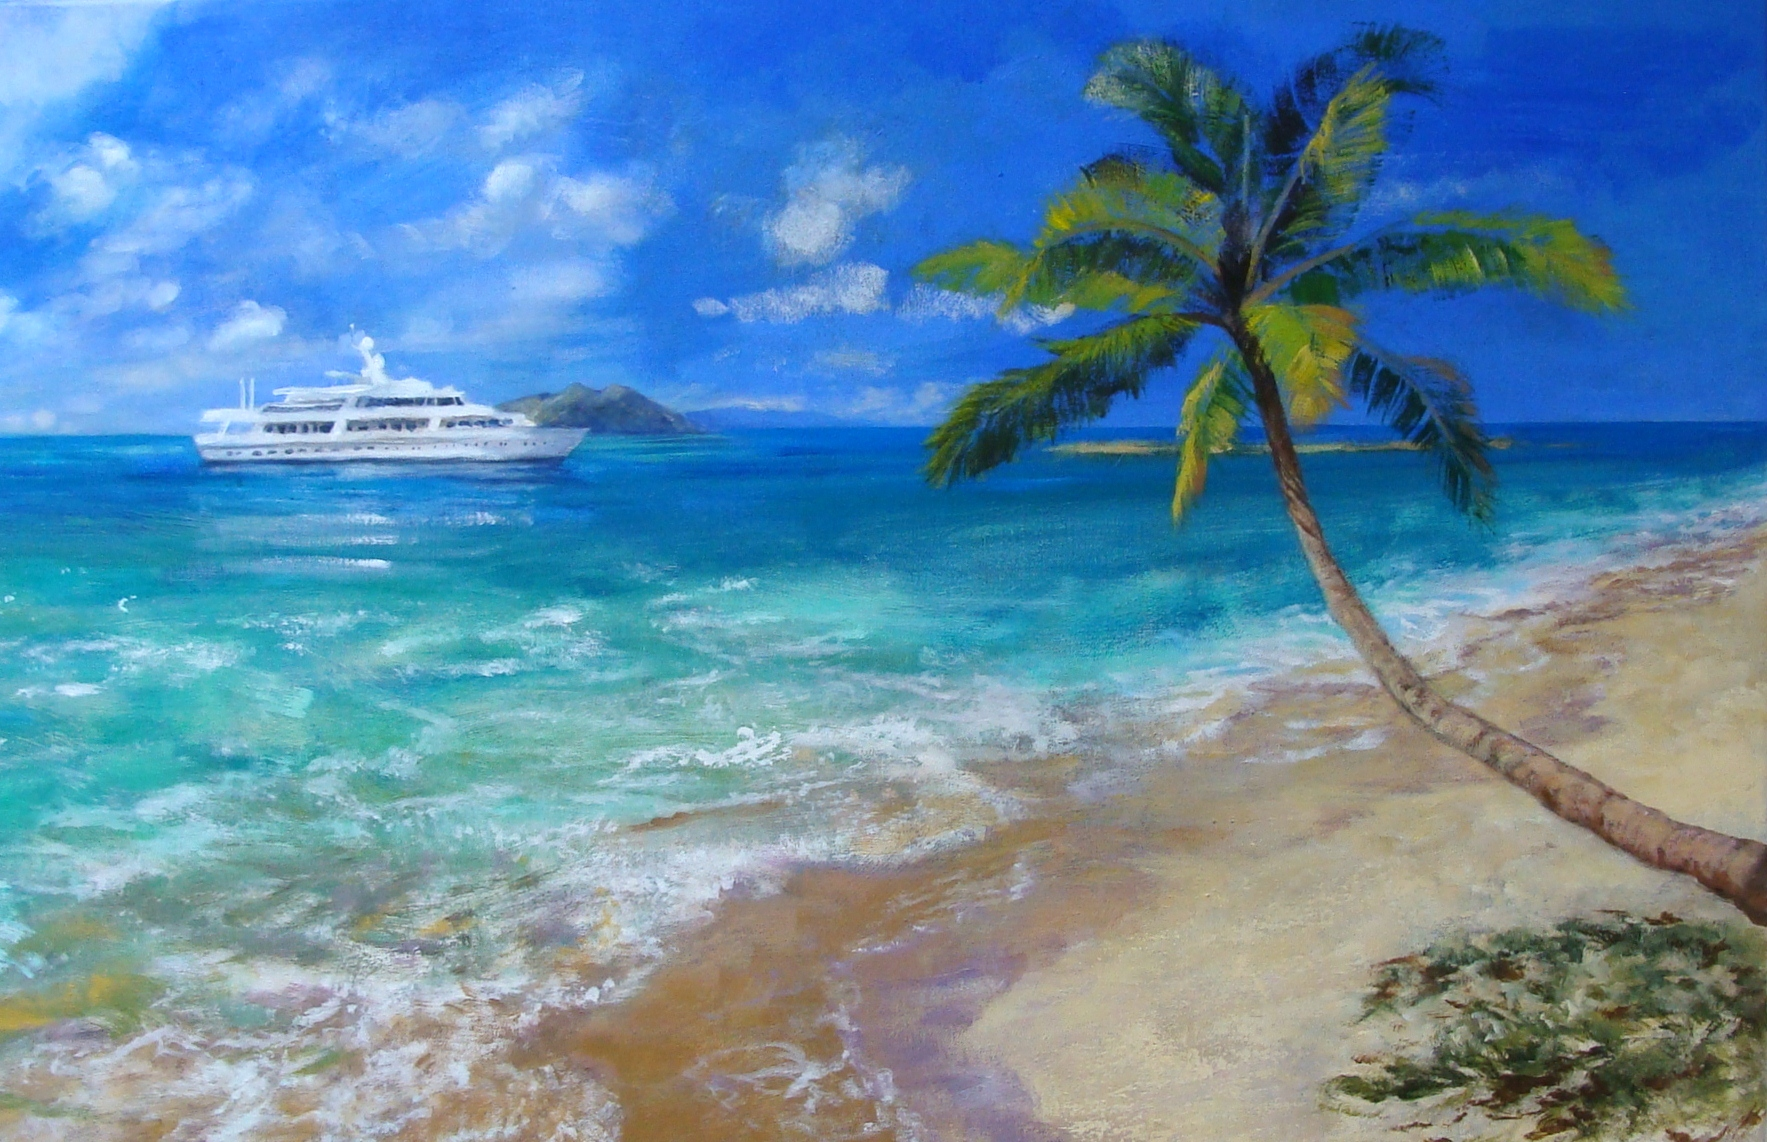 Lillian Kennedy - Caribbean painting commission in process, acrylic